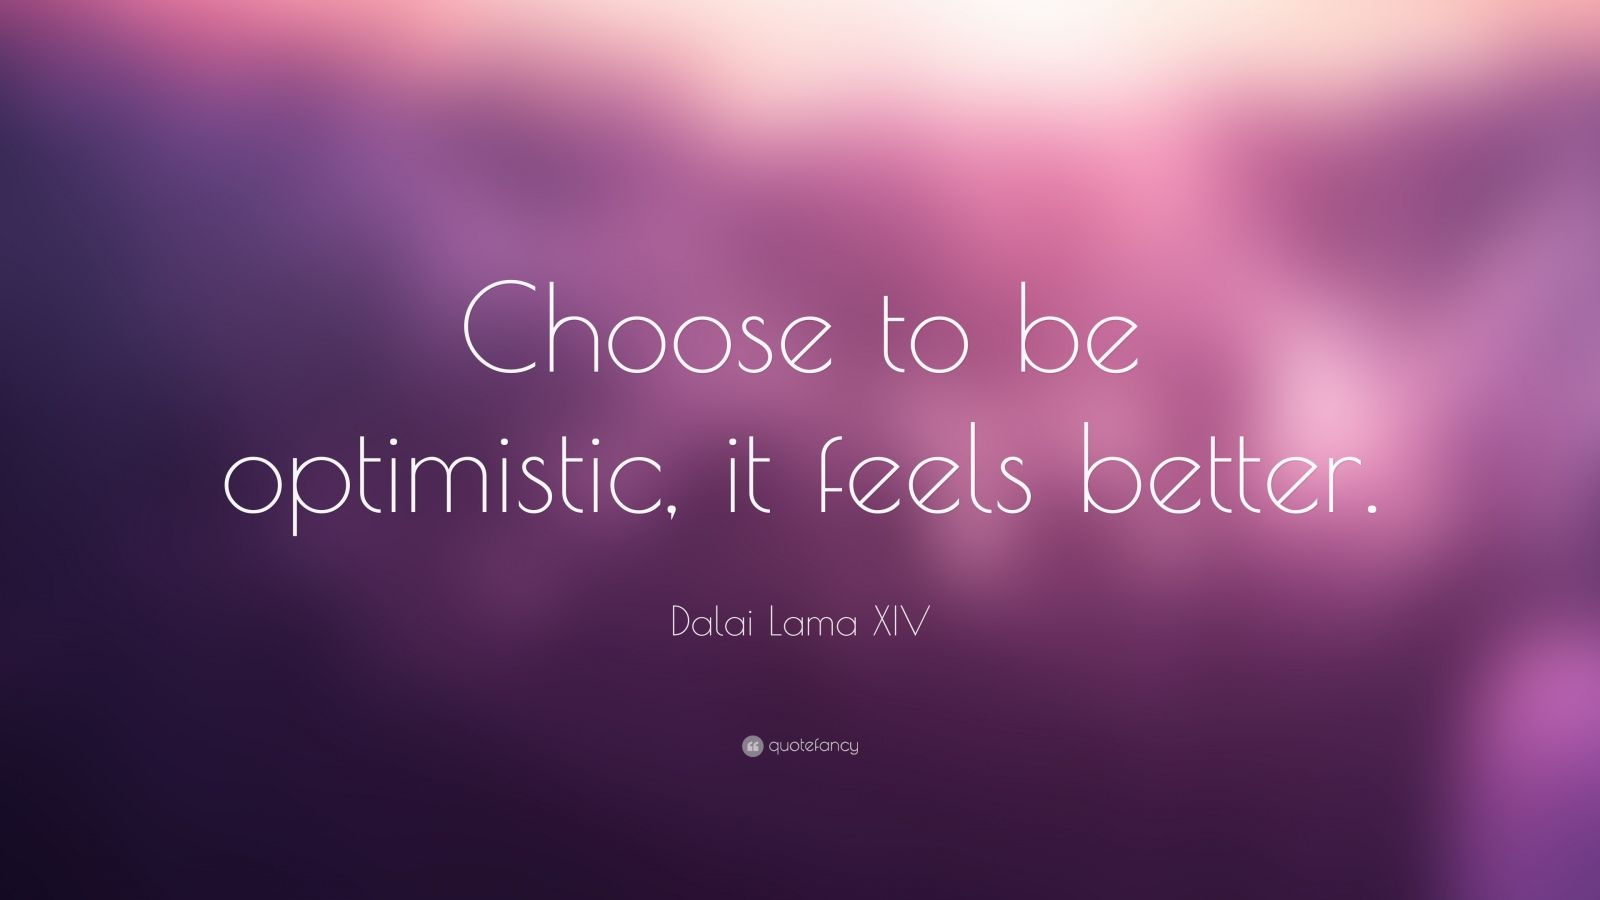 Peace Quotes Wallpapers Hd Dalai Lama Xiv Quote Choose To Be Optimistic It Feels